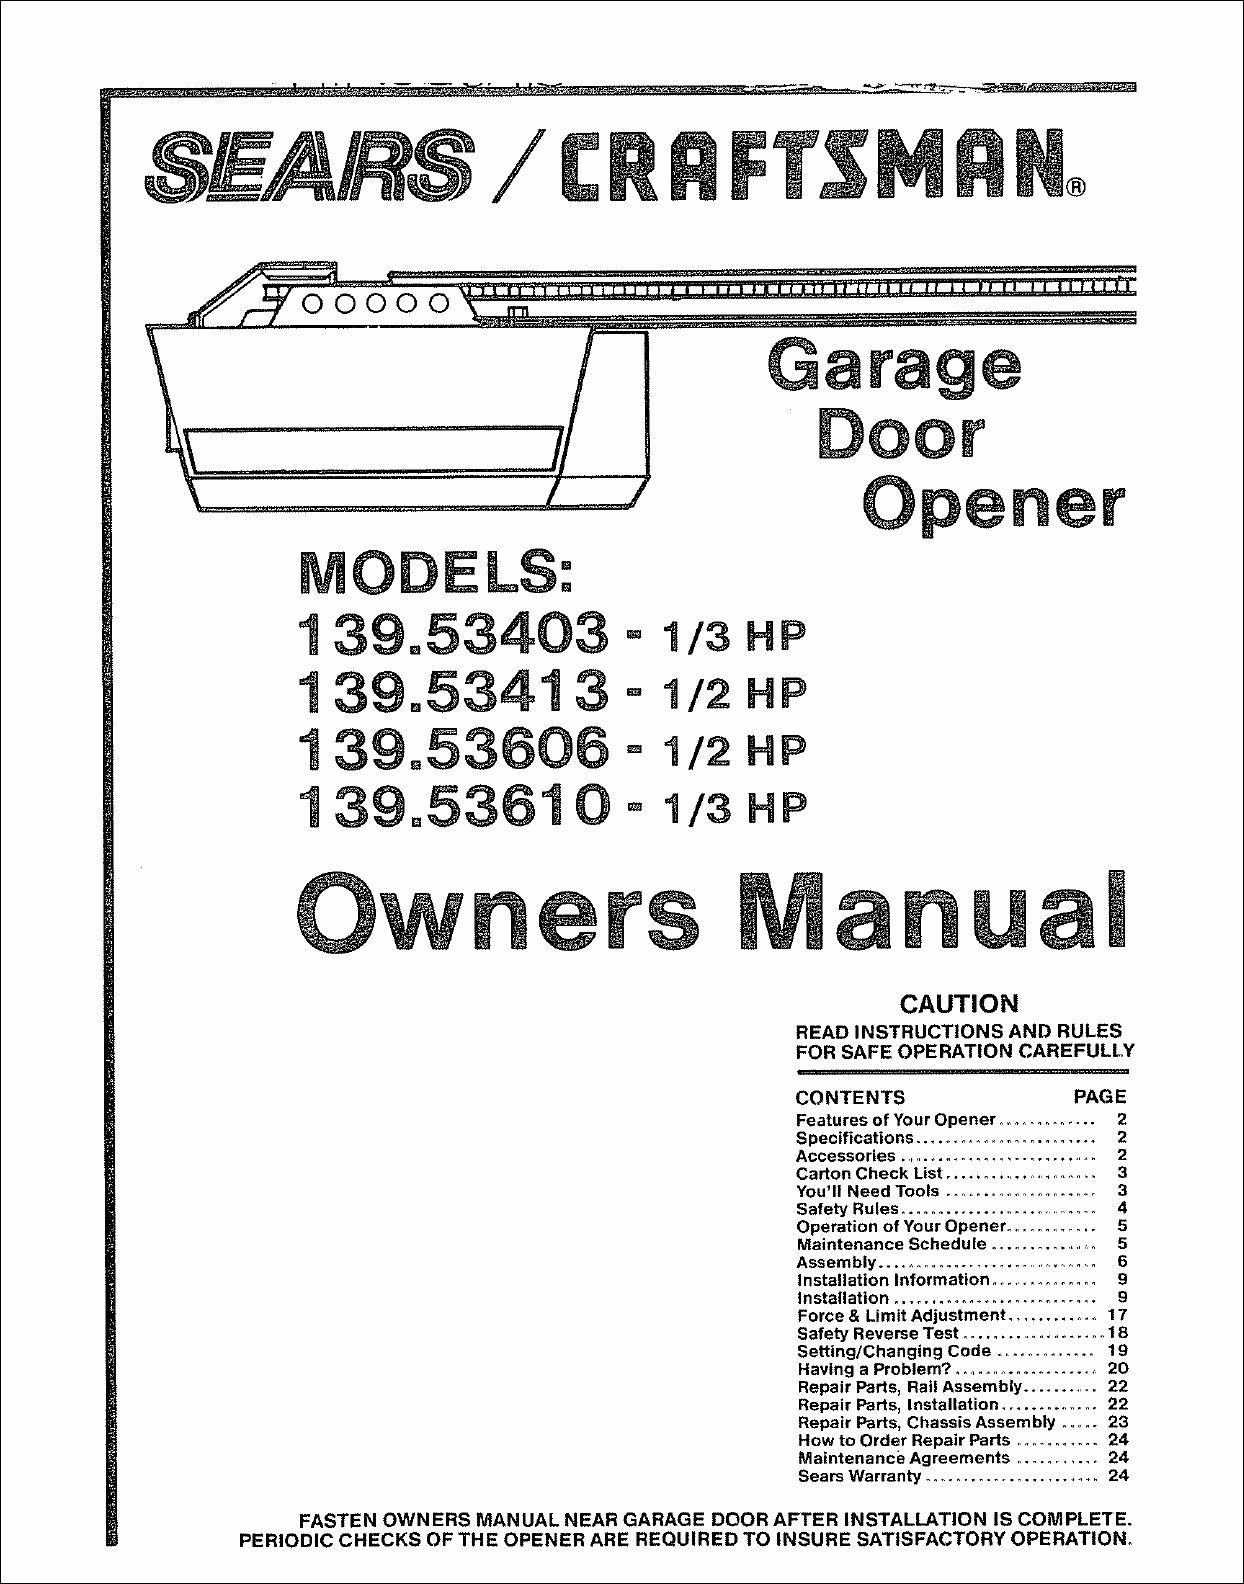 [QNCB_7524]  Unique Wiring Diagram Garage Door Motor #diagram #diagramsample #diagramt…  | Craftsman garage door, Garage door opener troubleshooting, Craftsman  garage door opener | Sears Garage Door Opener Wiring Diagram |  | Pinterest